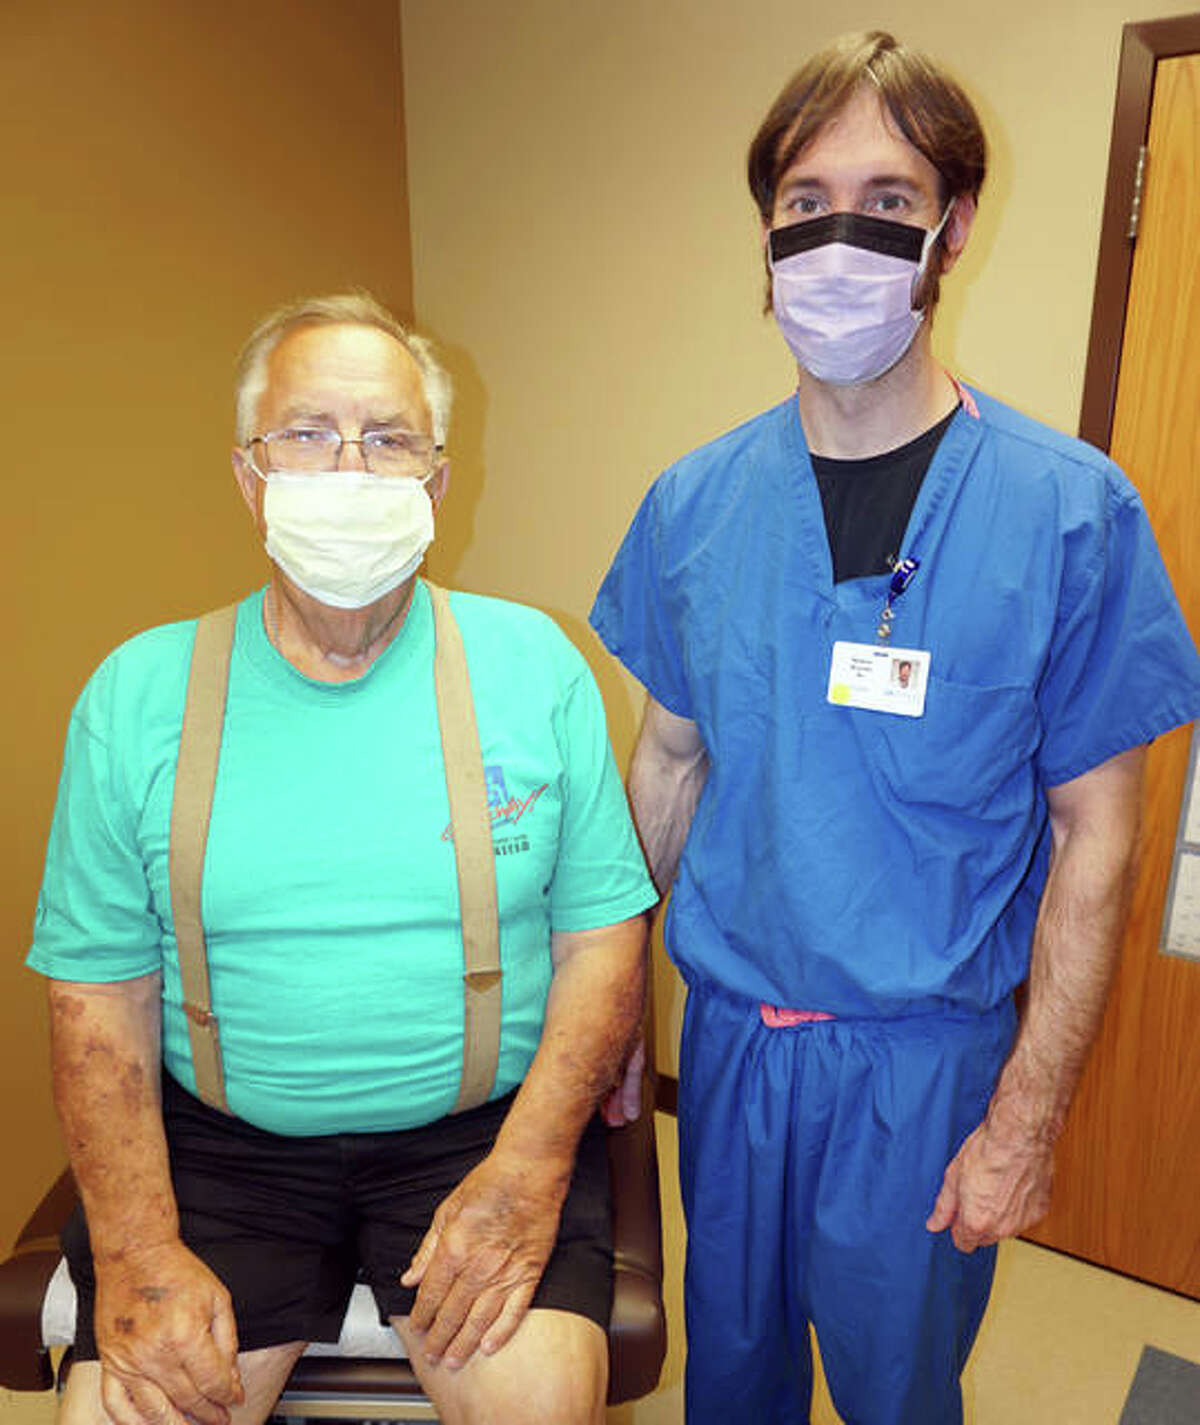 Paul Waters of Bunker Hill is shown with Dr. Matthew Musielak, the surgeon at Alton Memorial Hospital who leads the Bariatrics program. Through the program, Waters has lost 59 pounds.